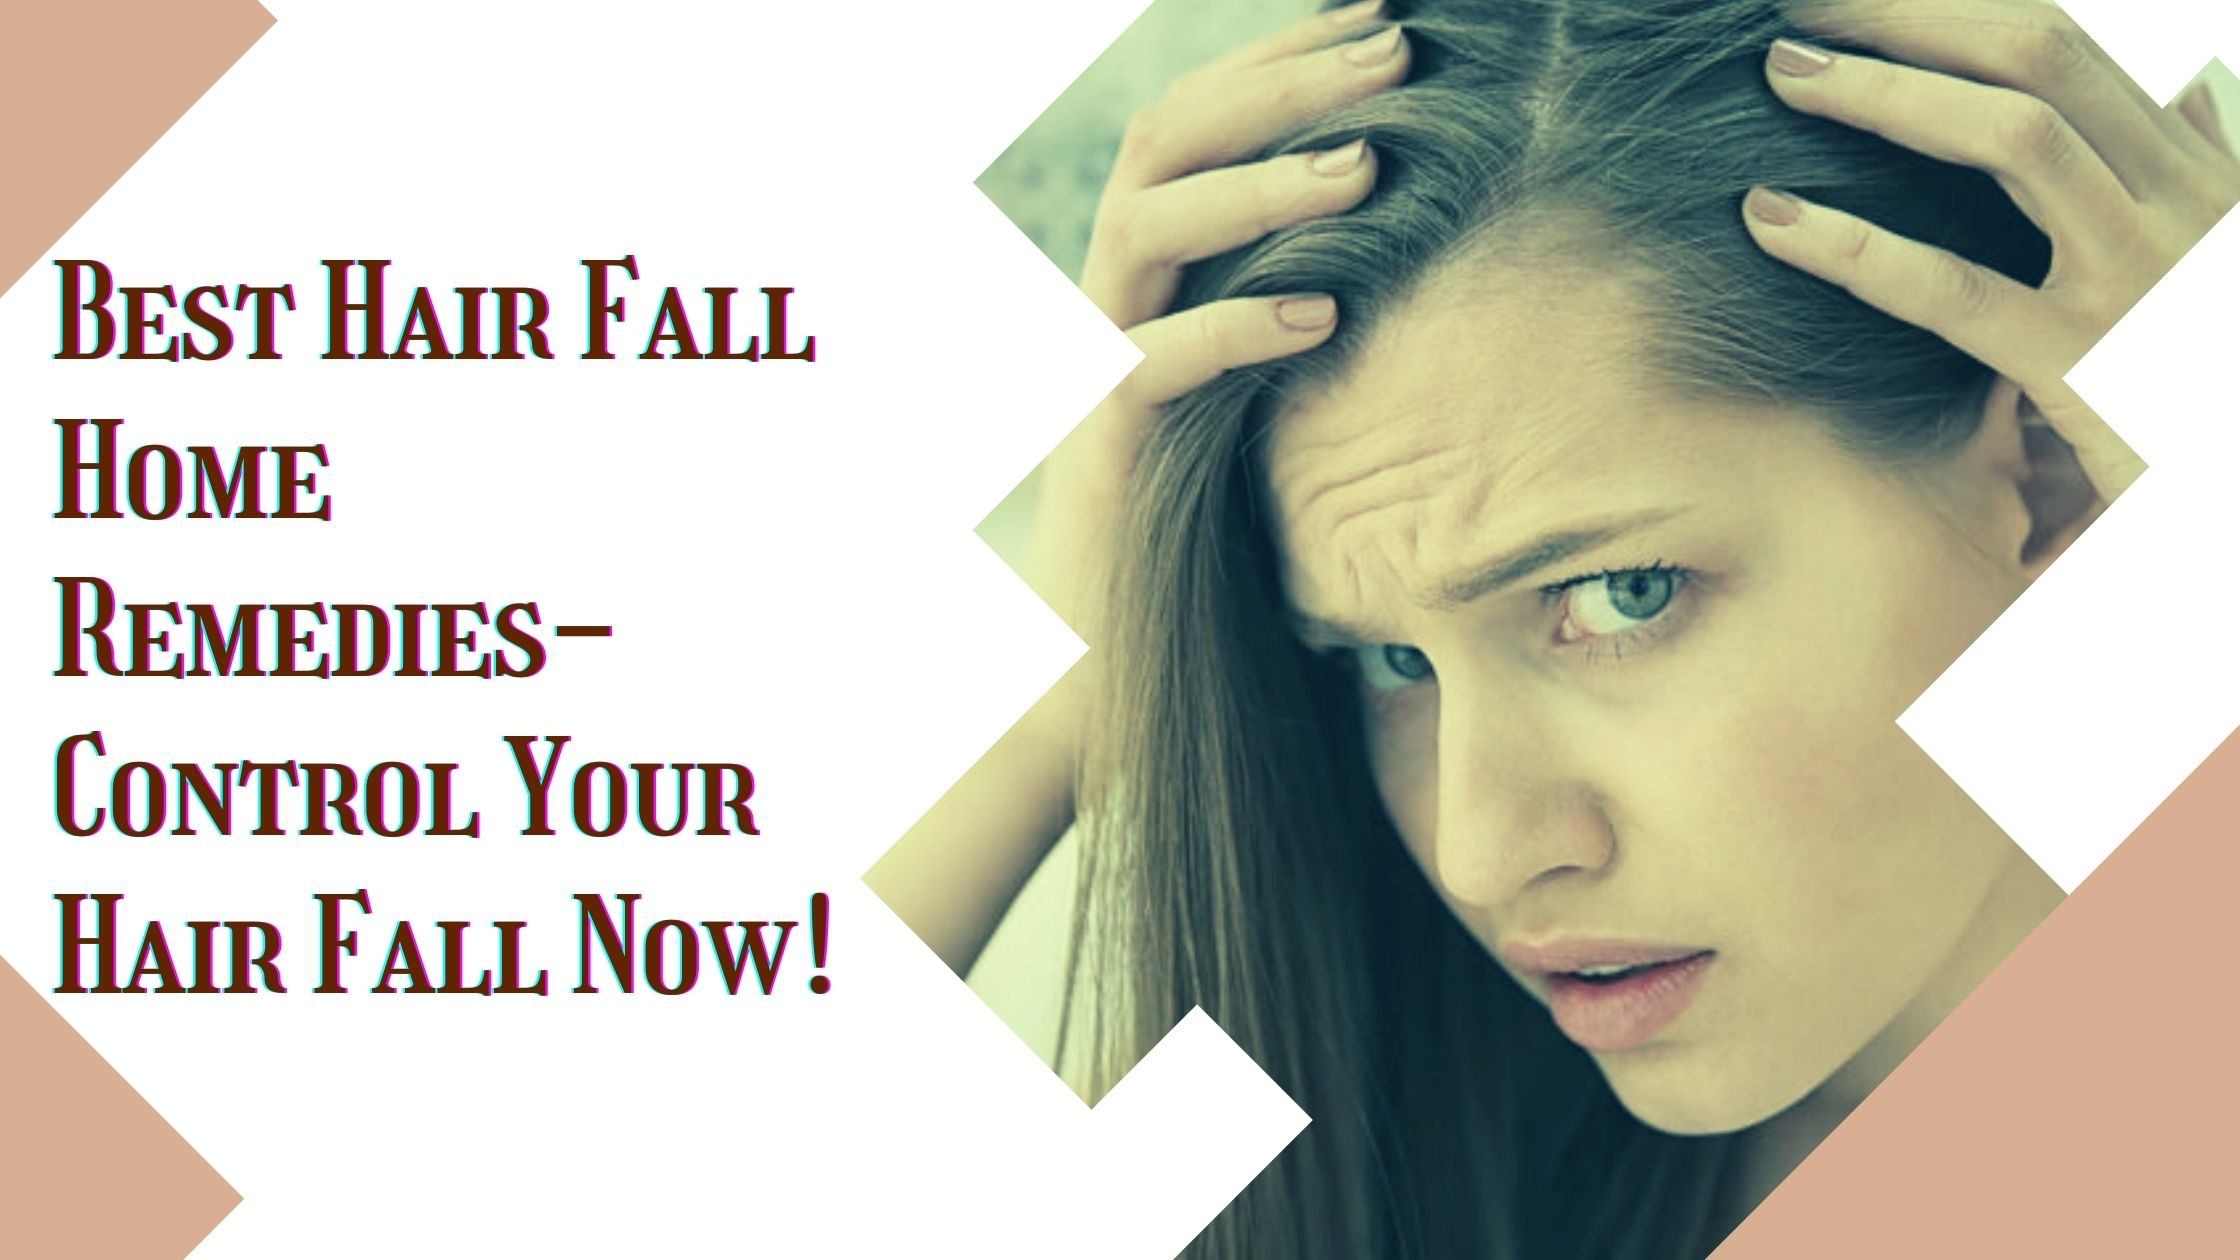 Best Hair Fall Home Remedies- Control Your Hair Fall Now!